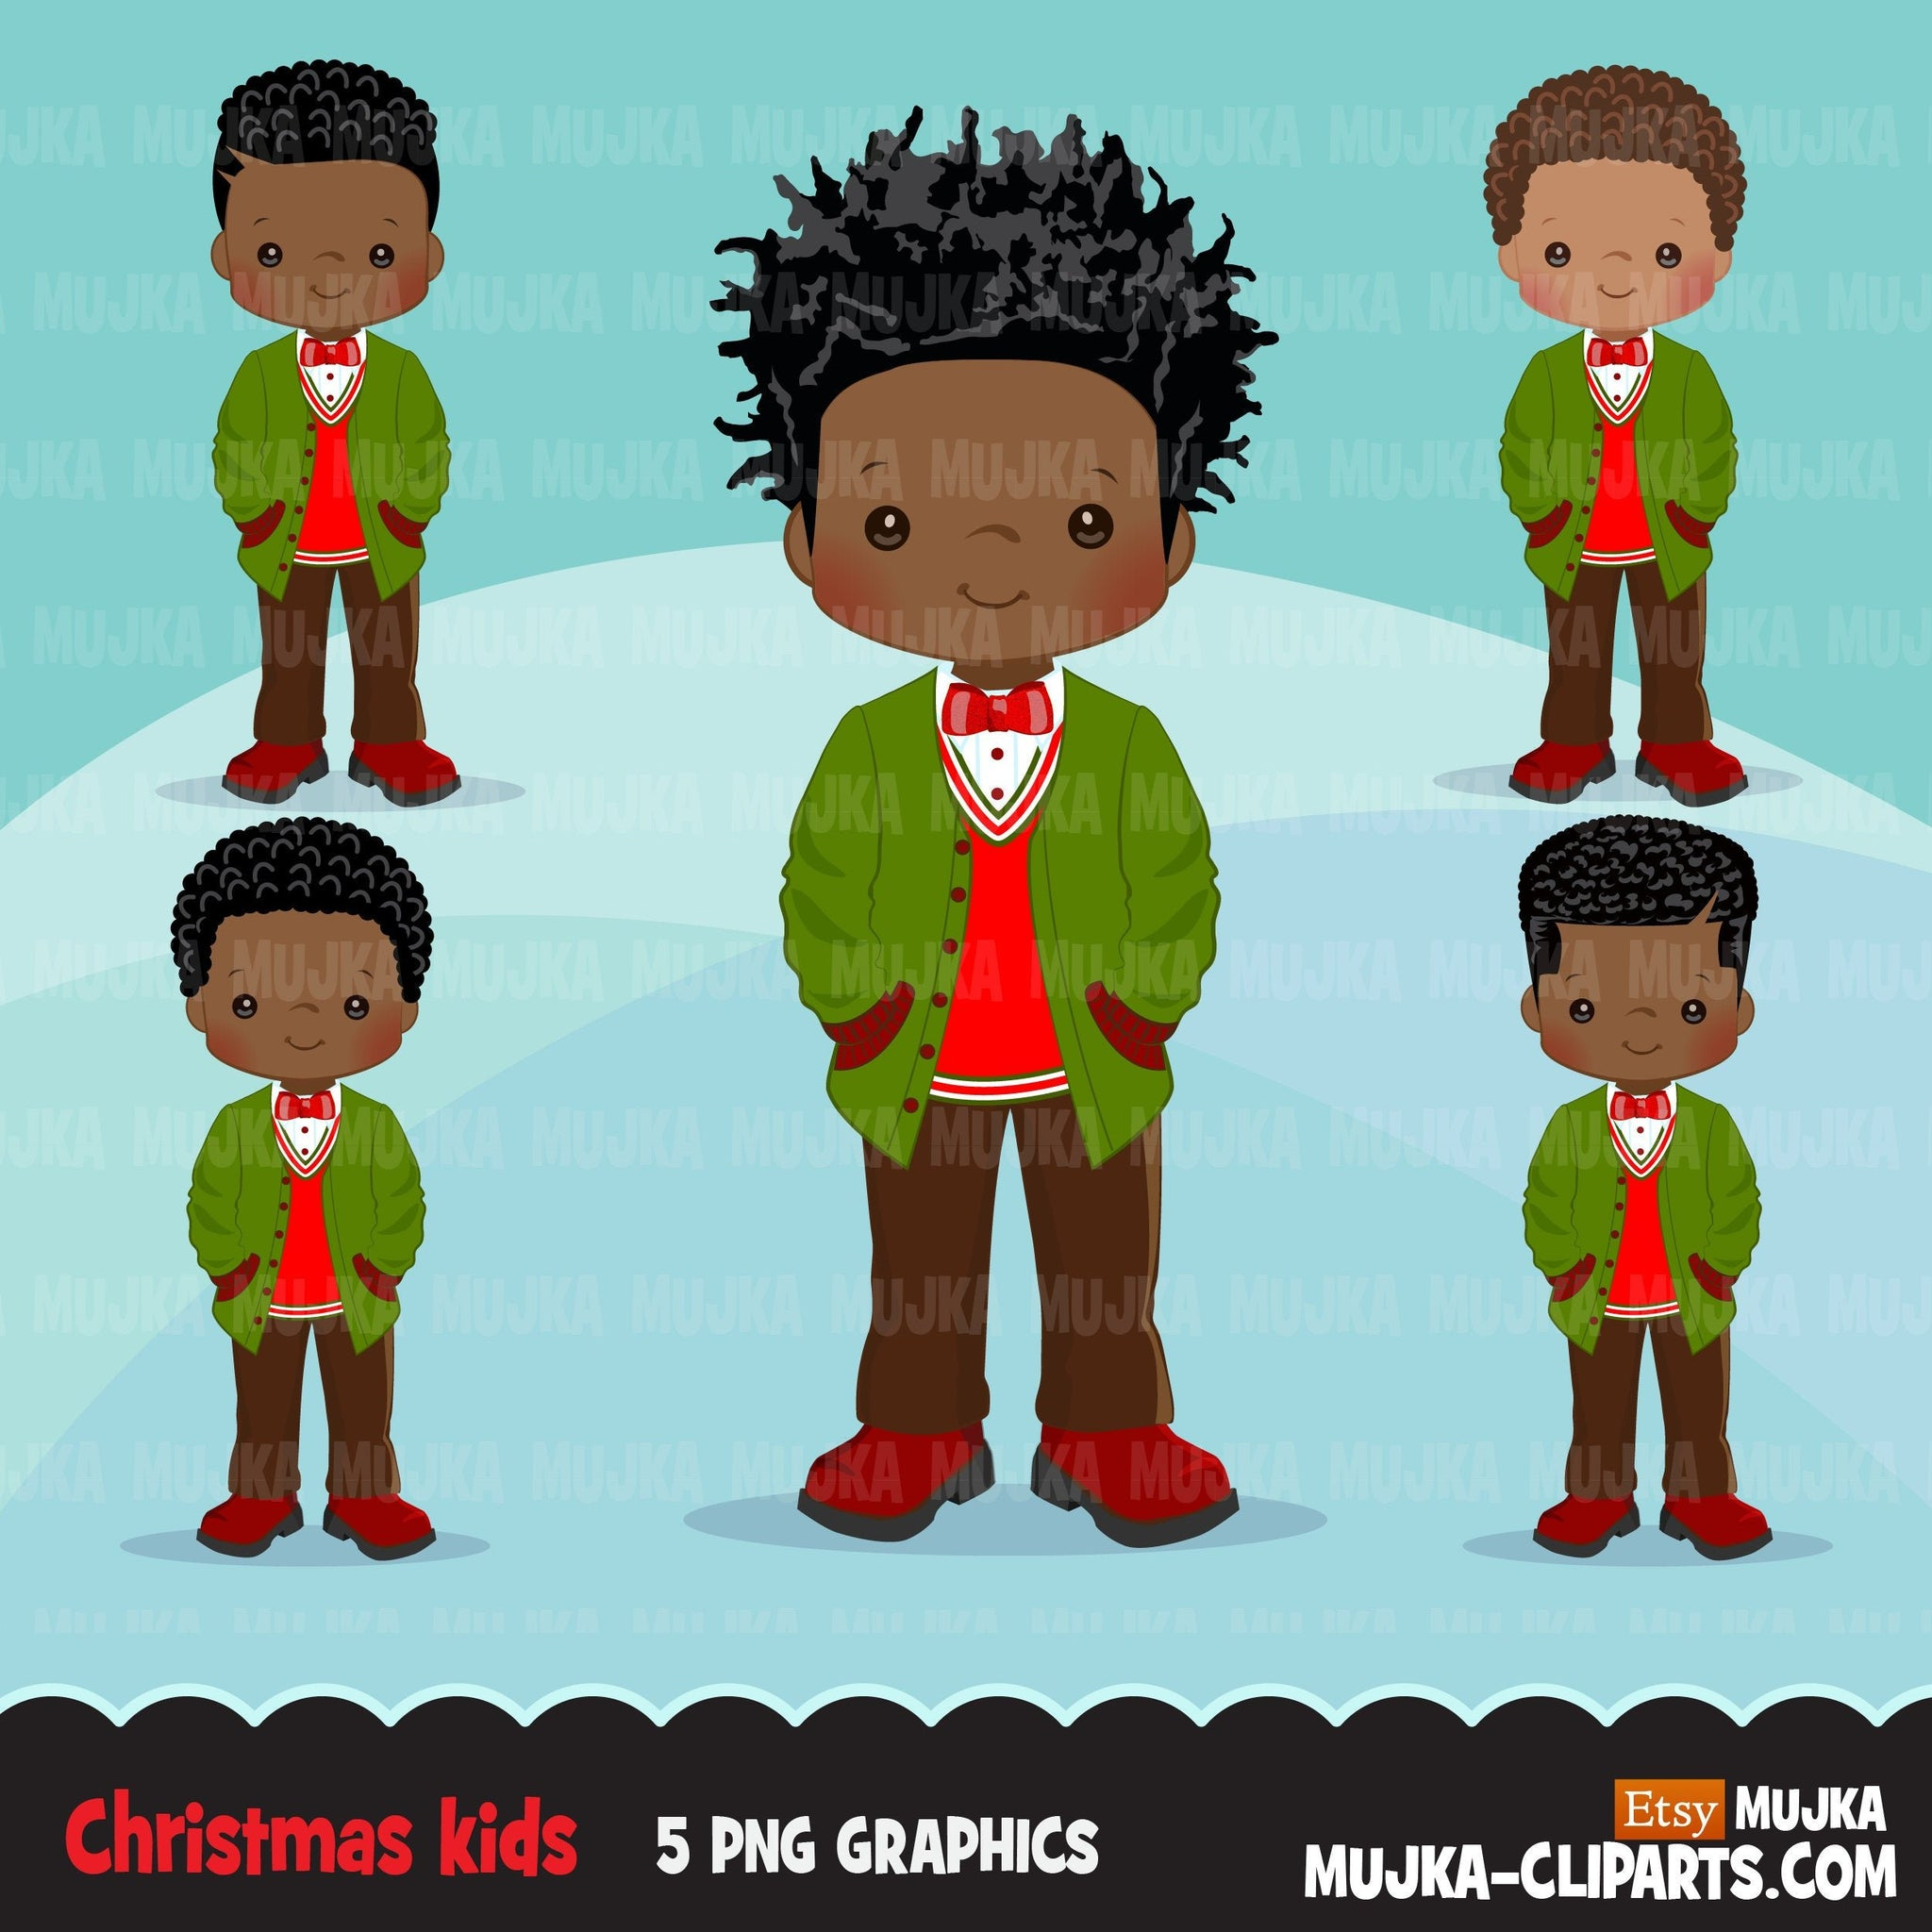 Christmas Clipart, black boy christmas outfit, Noel graphics, Holiday afro characters, png sublimation digital clip art